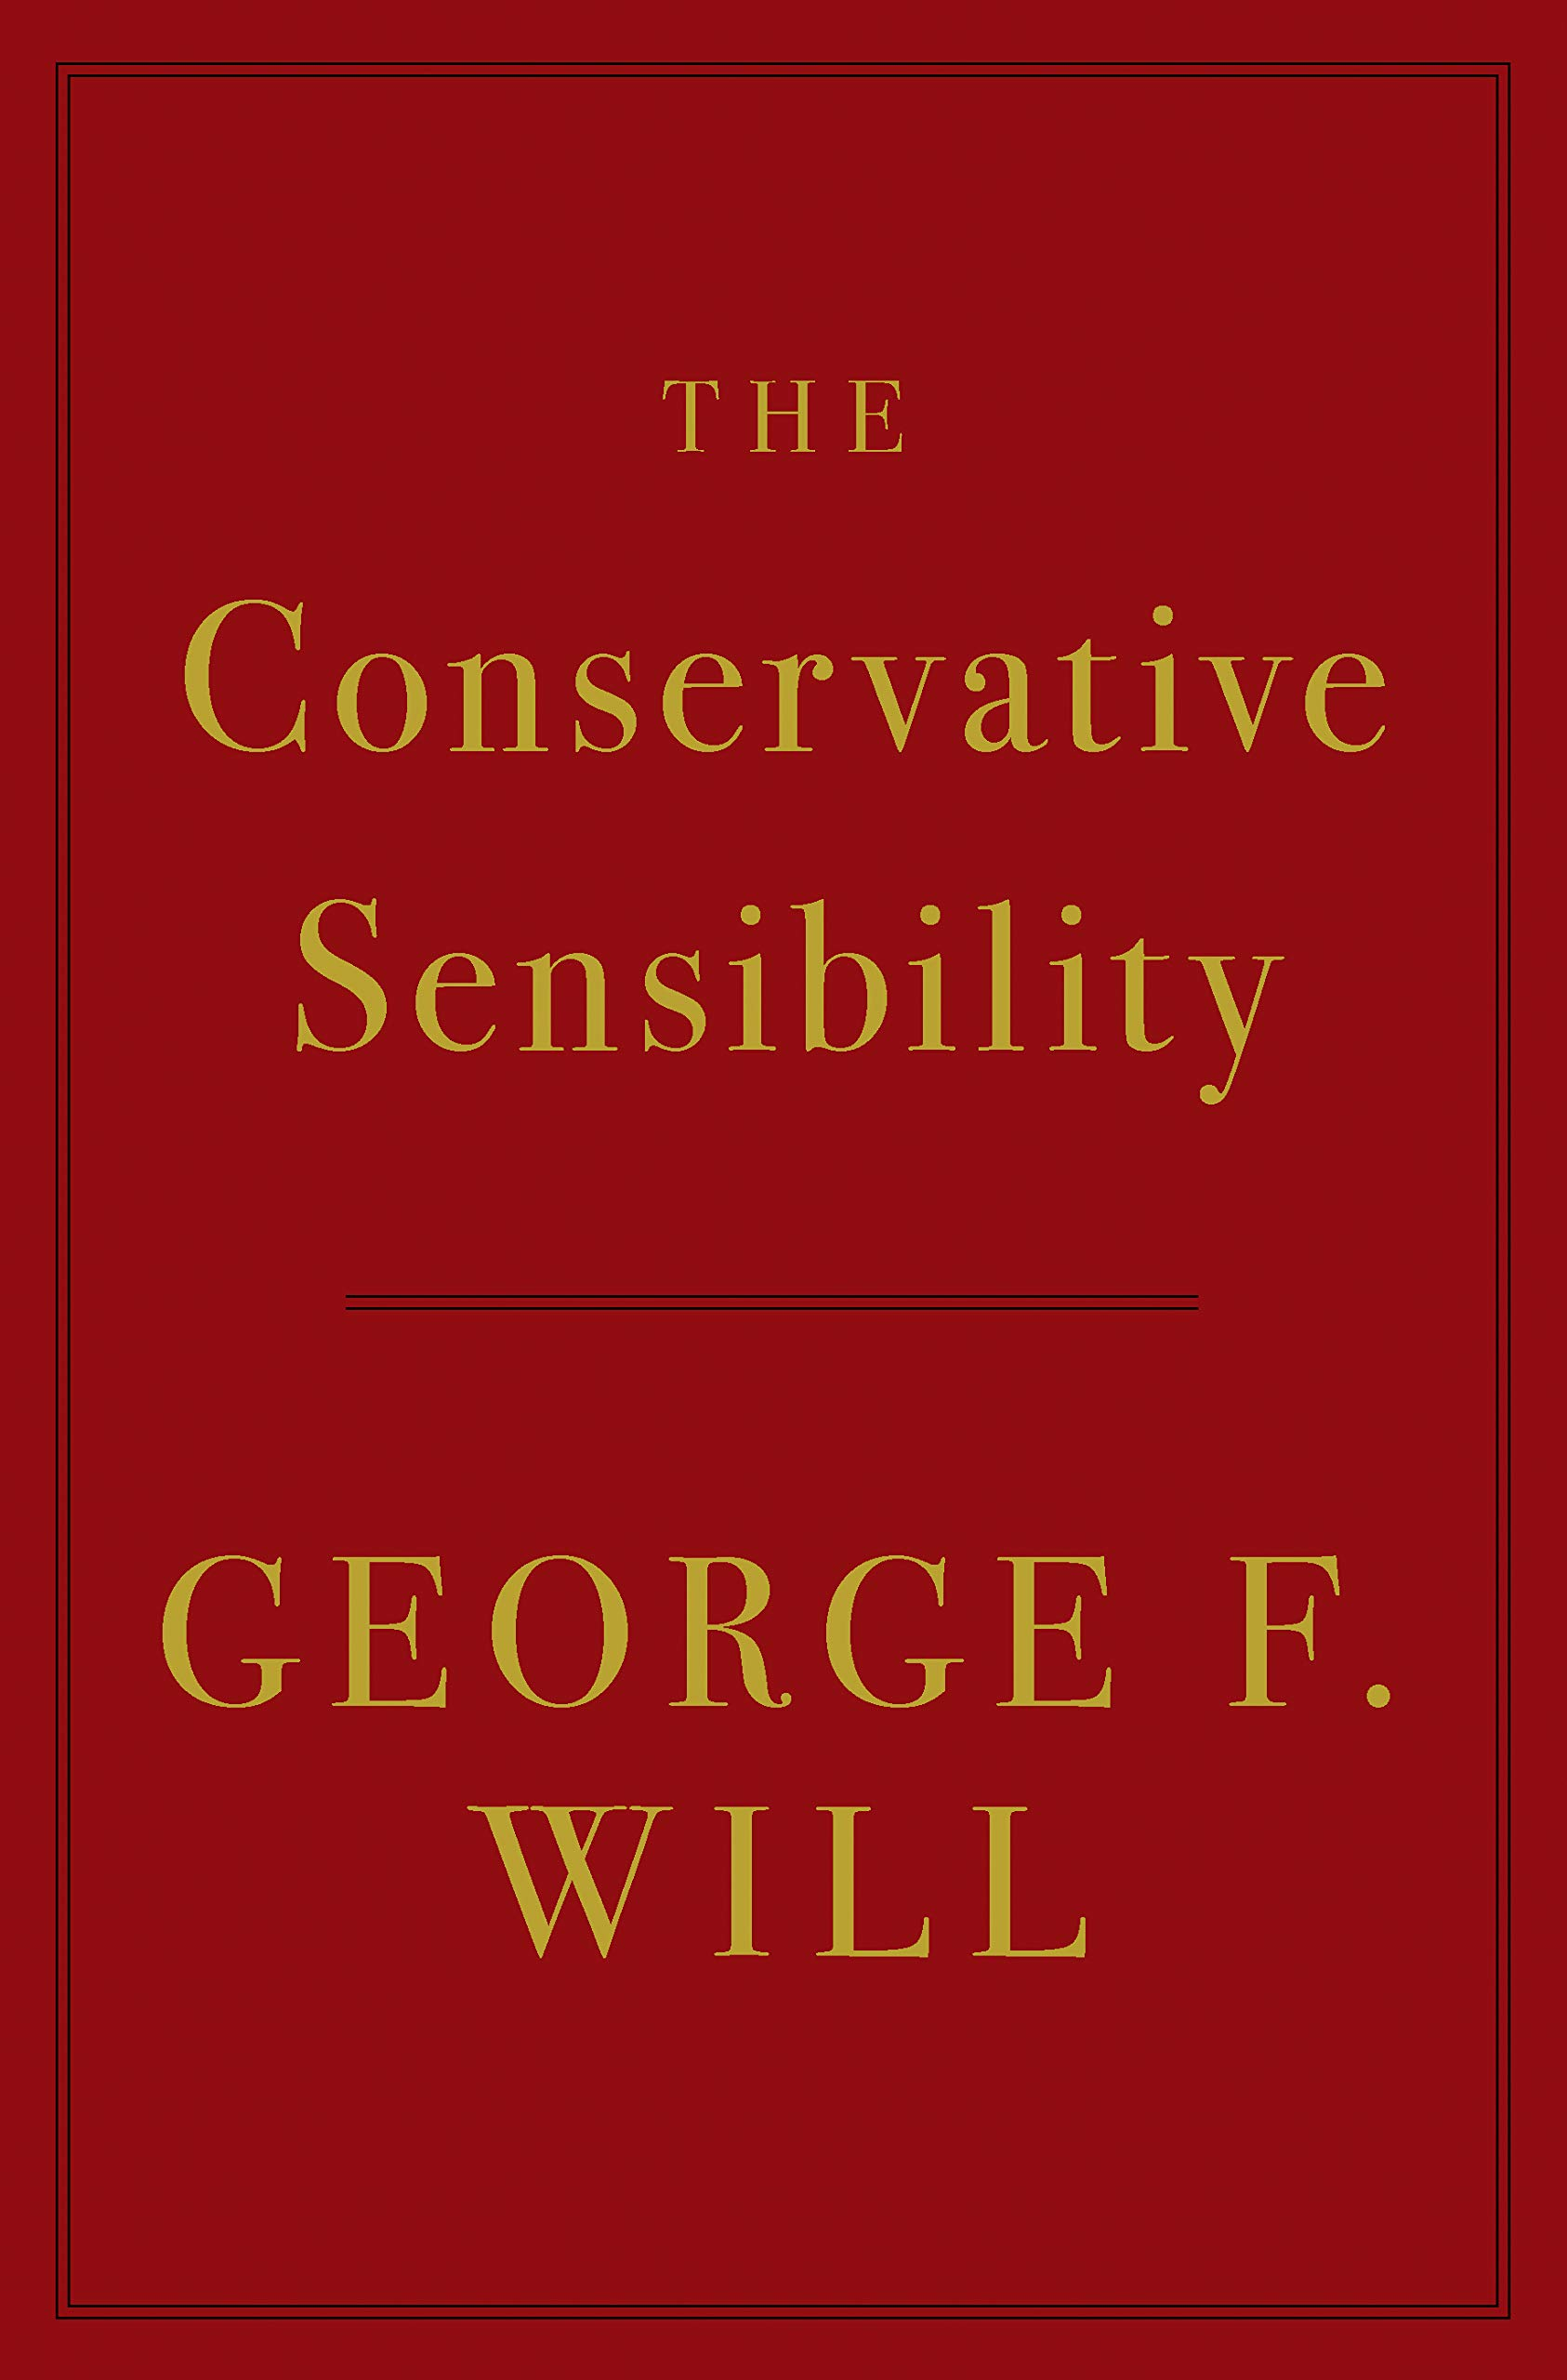 The Conservative Sensibility by Hachette Books